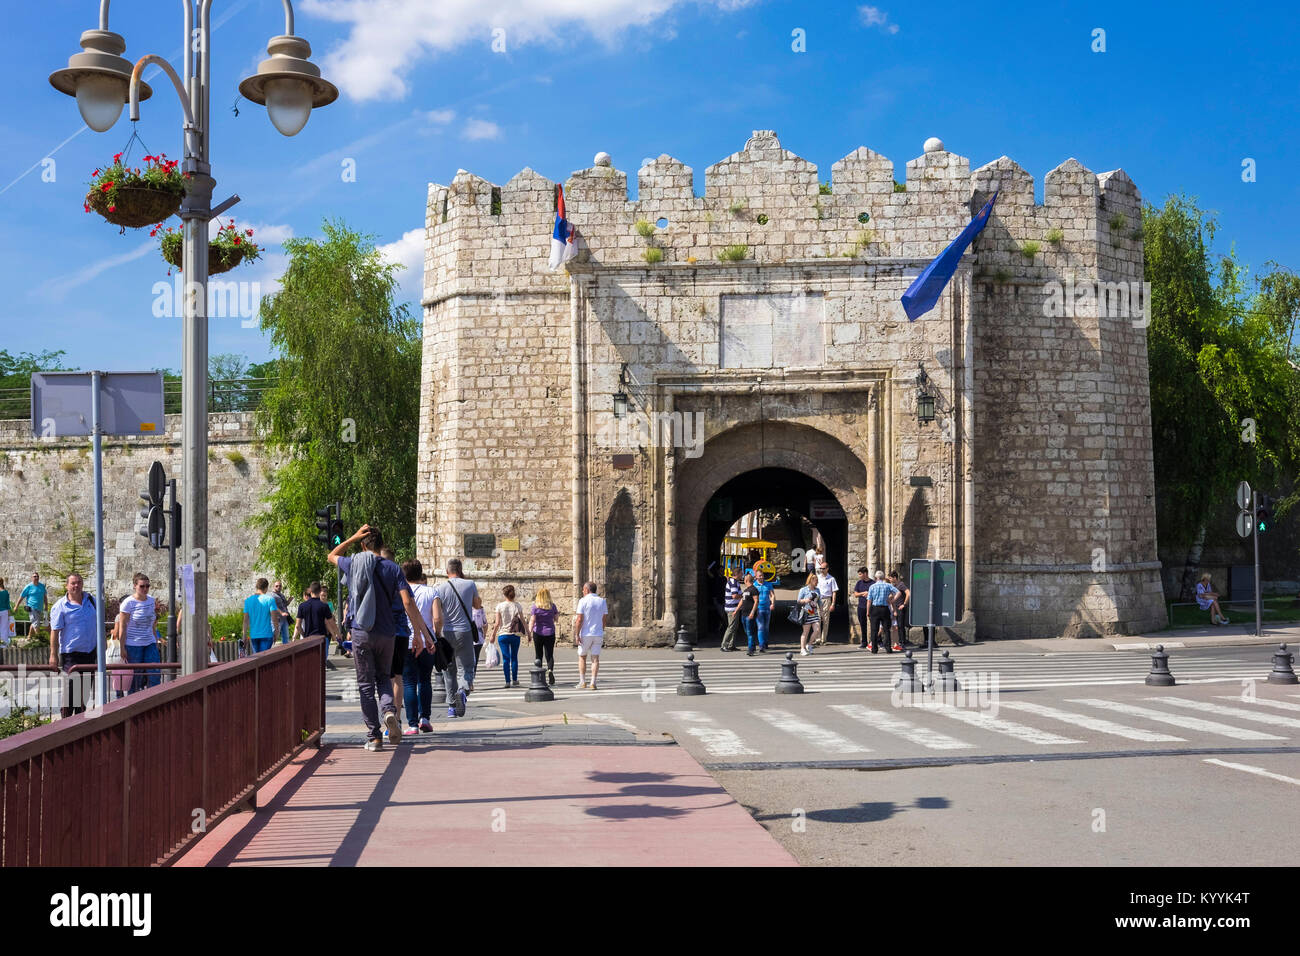 Nis, Serbia, Eastern Europe - The Istanbul or Stambol Gate, the main entrance to the Fortress in Nis town - Stock Image